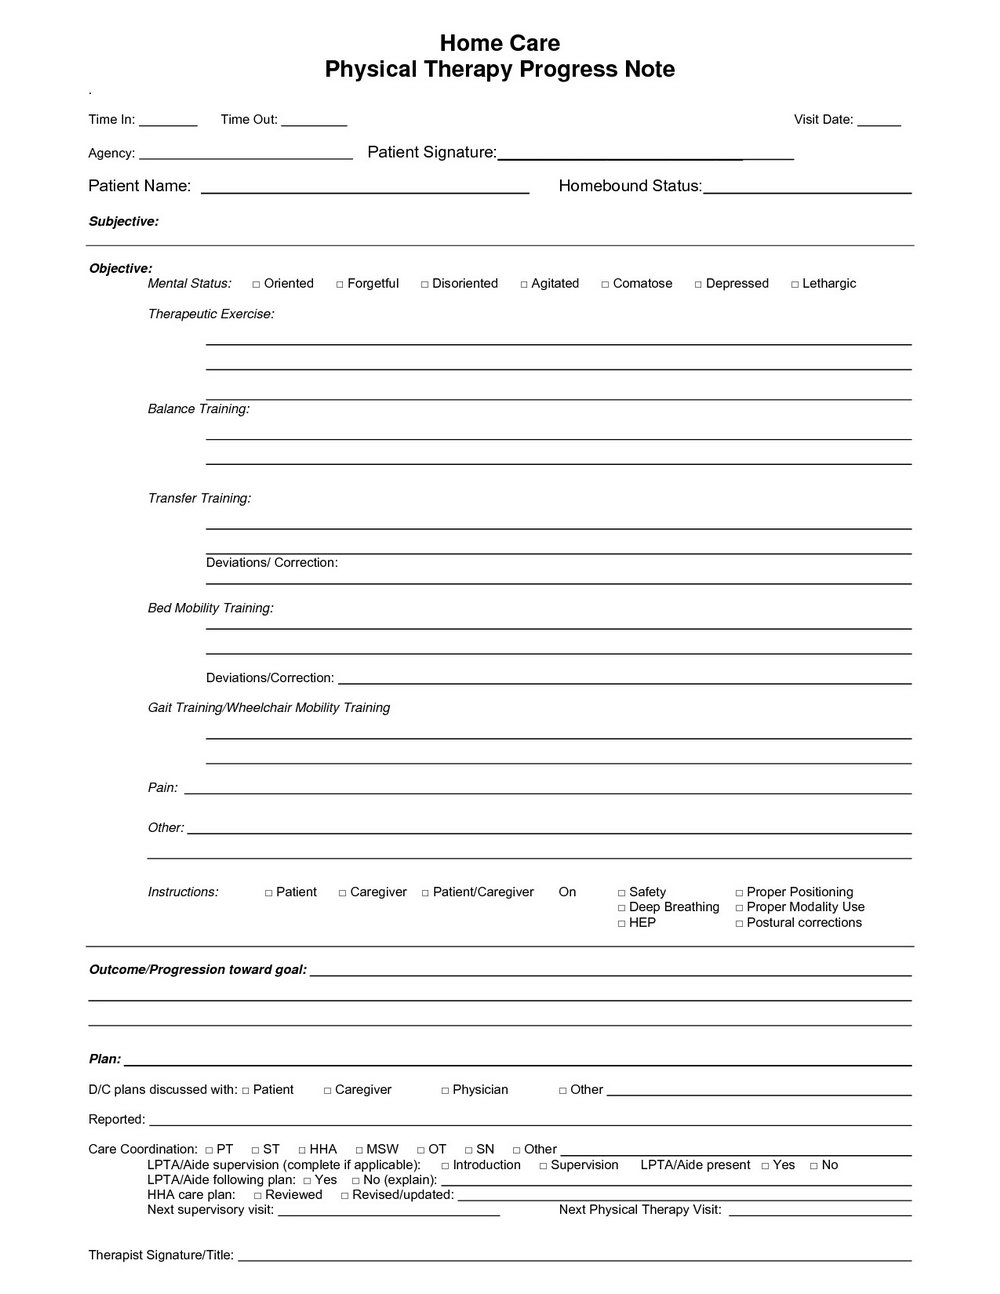 Physical Therapy Progress Note Template Pdf